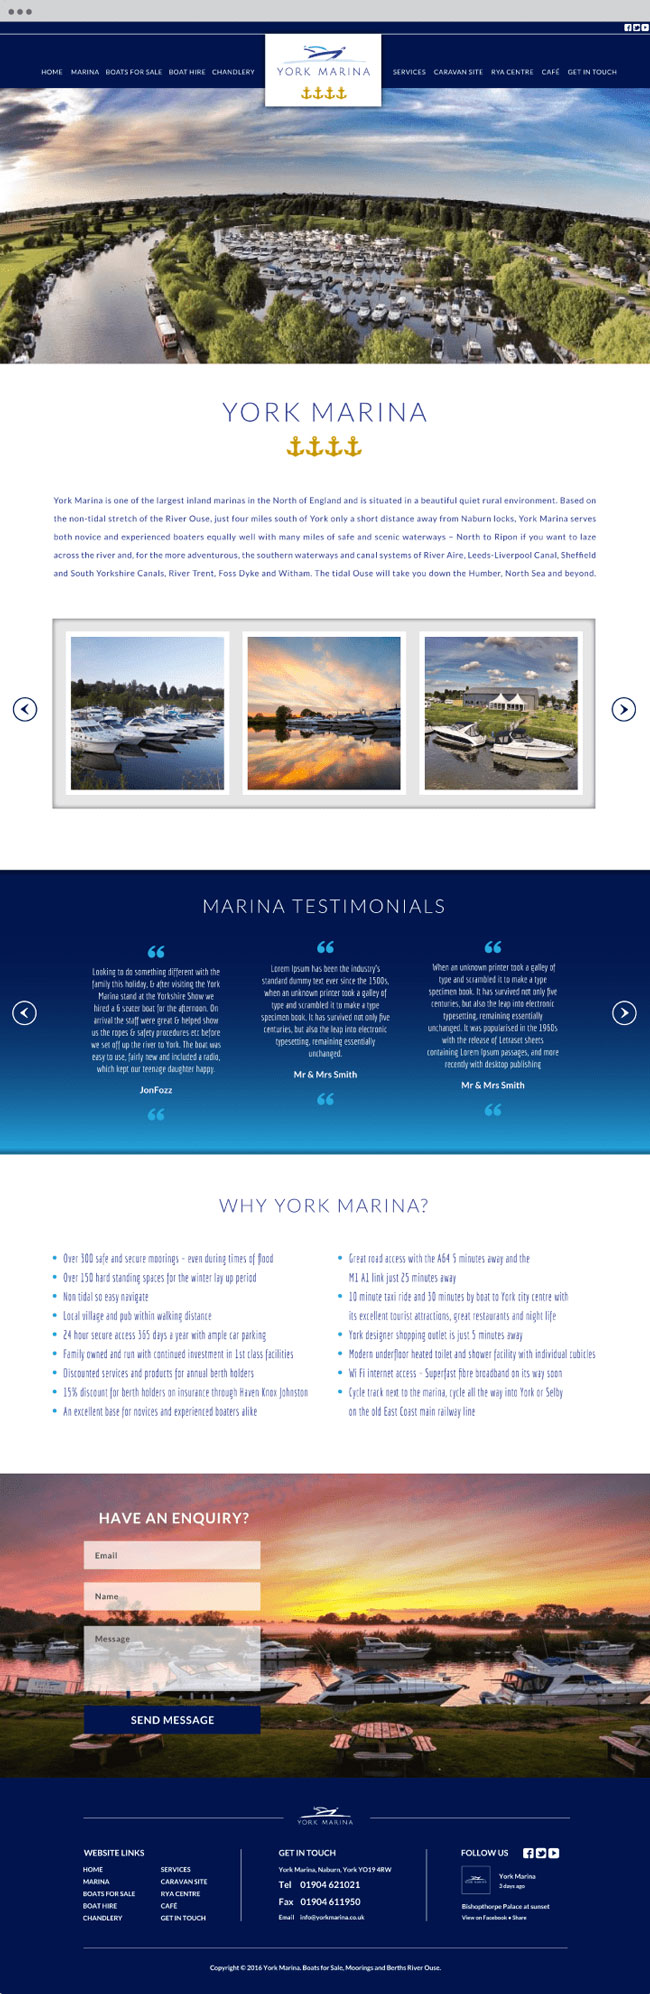 york marina website